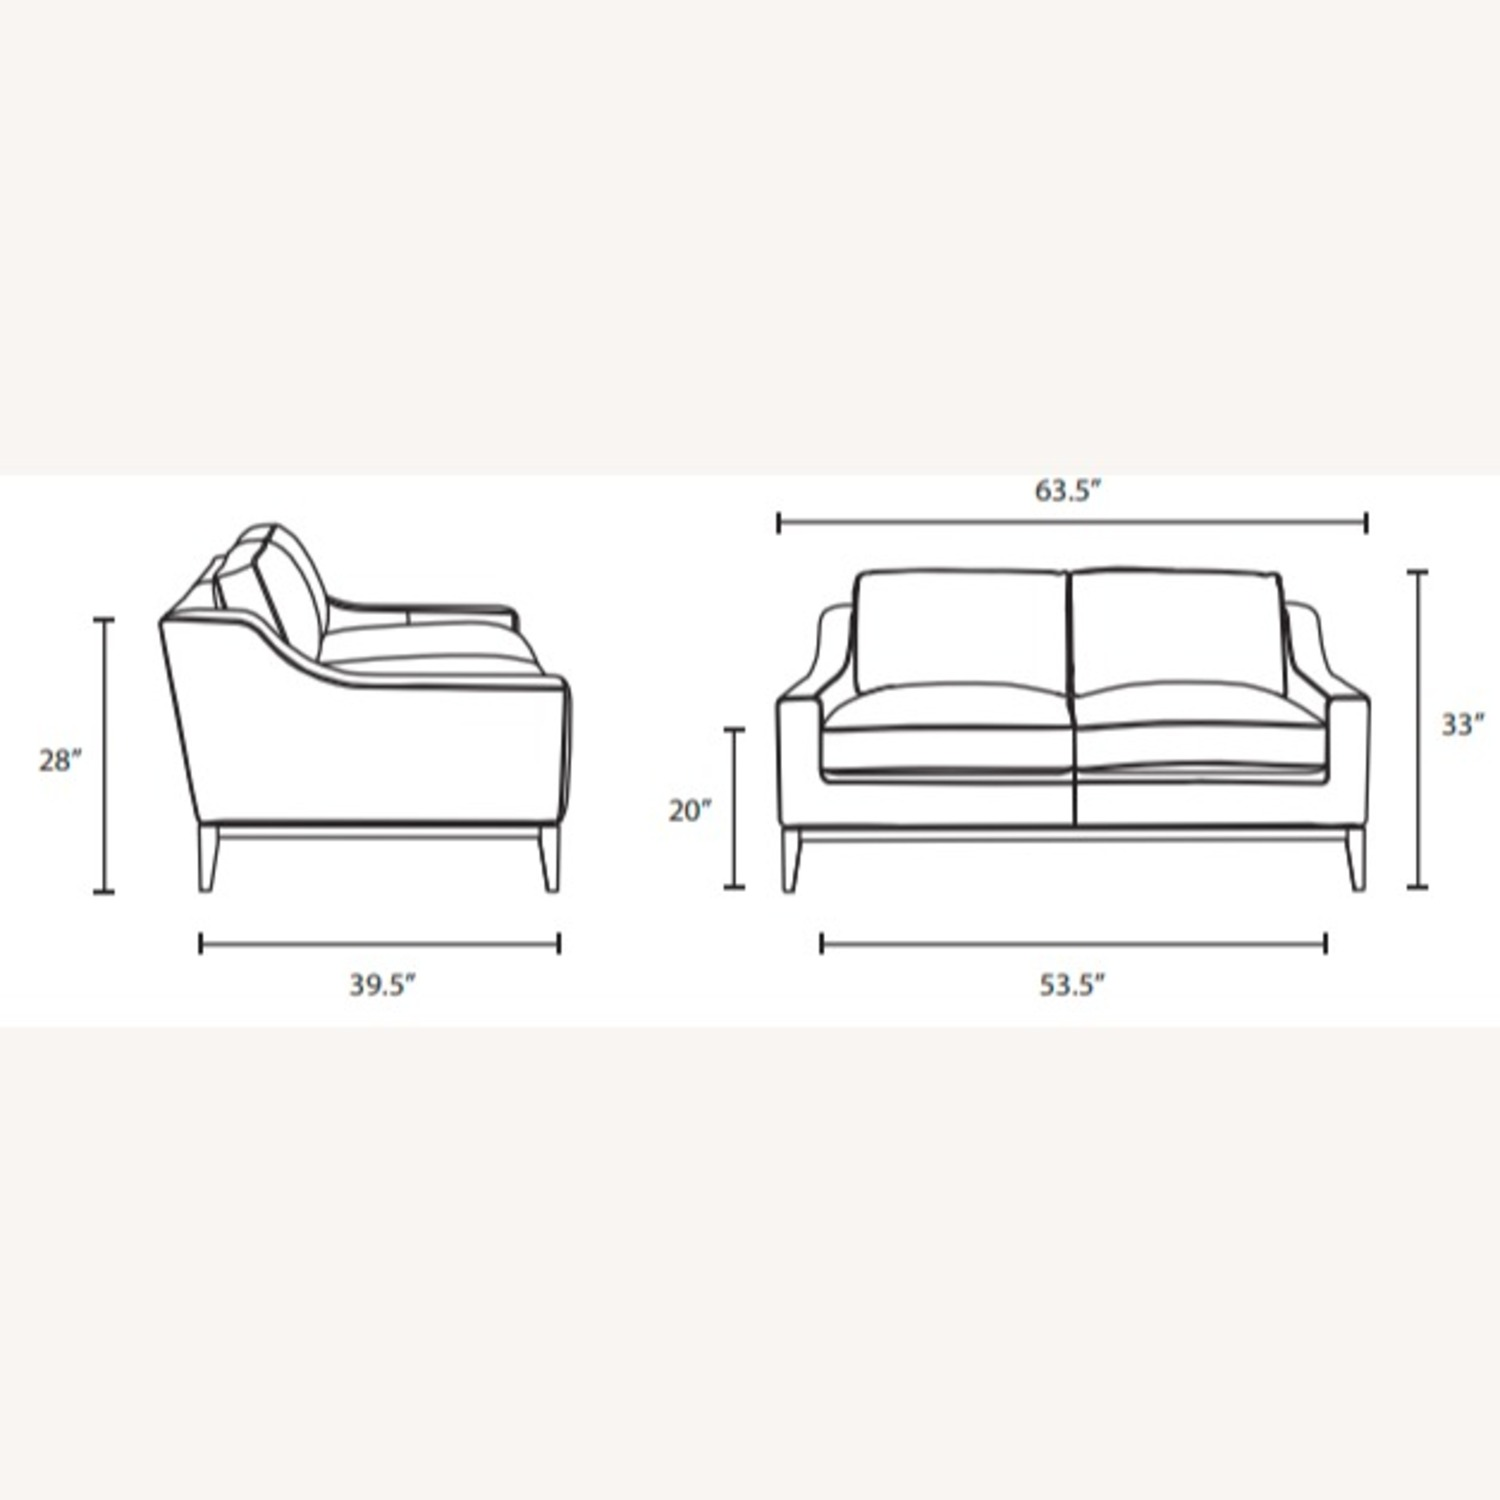 Loveseat In Gray Leather W/ Stainless Steel Base - image-6